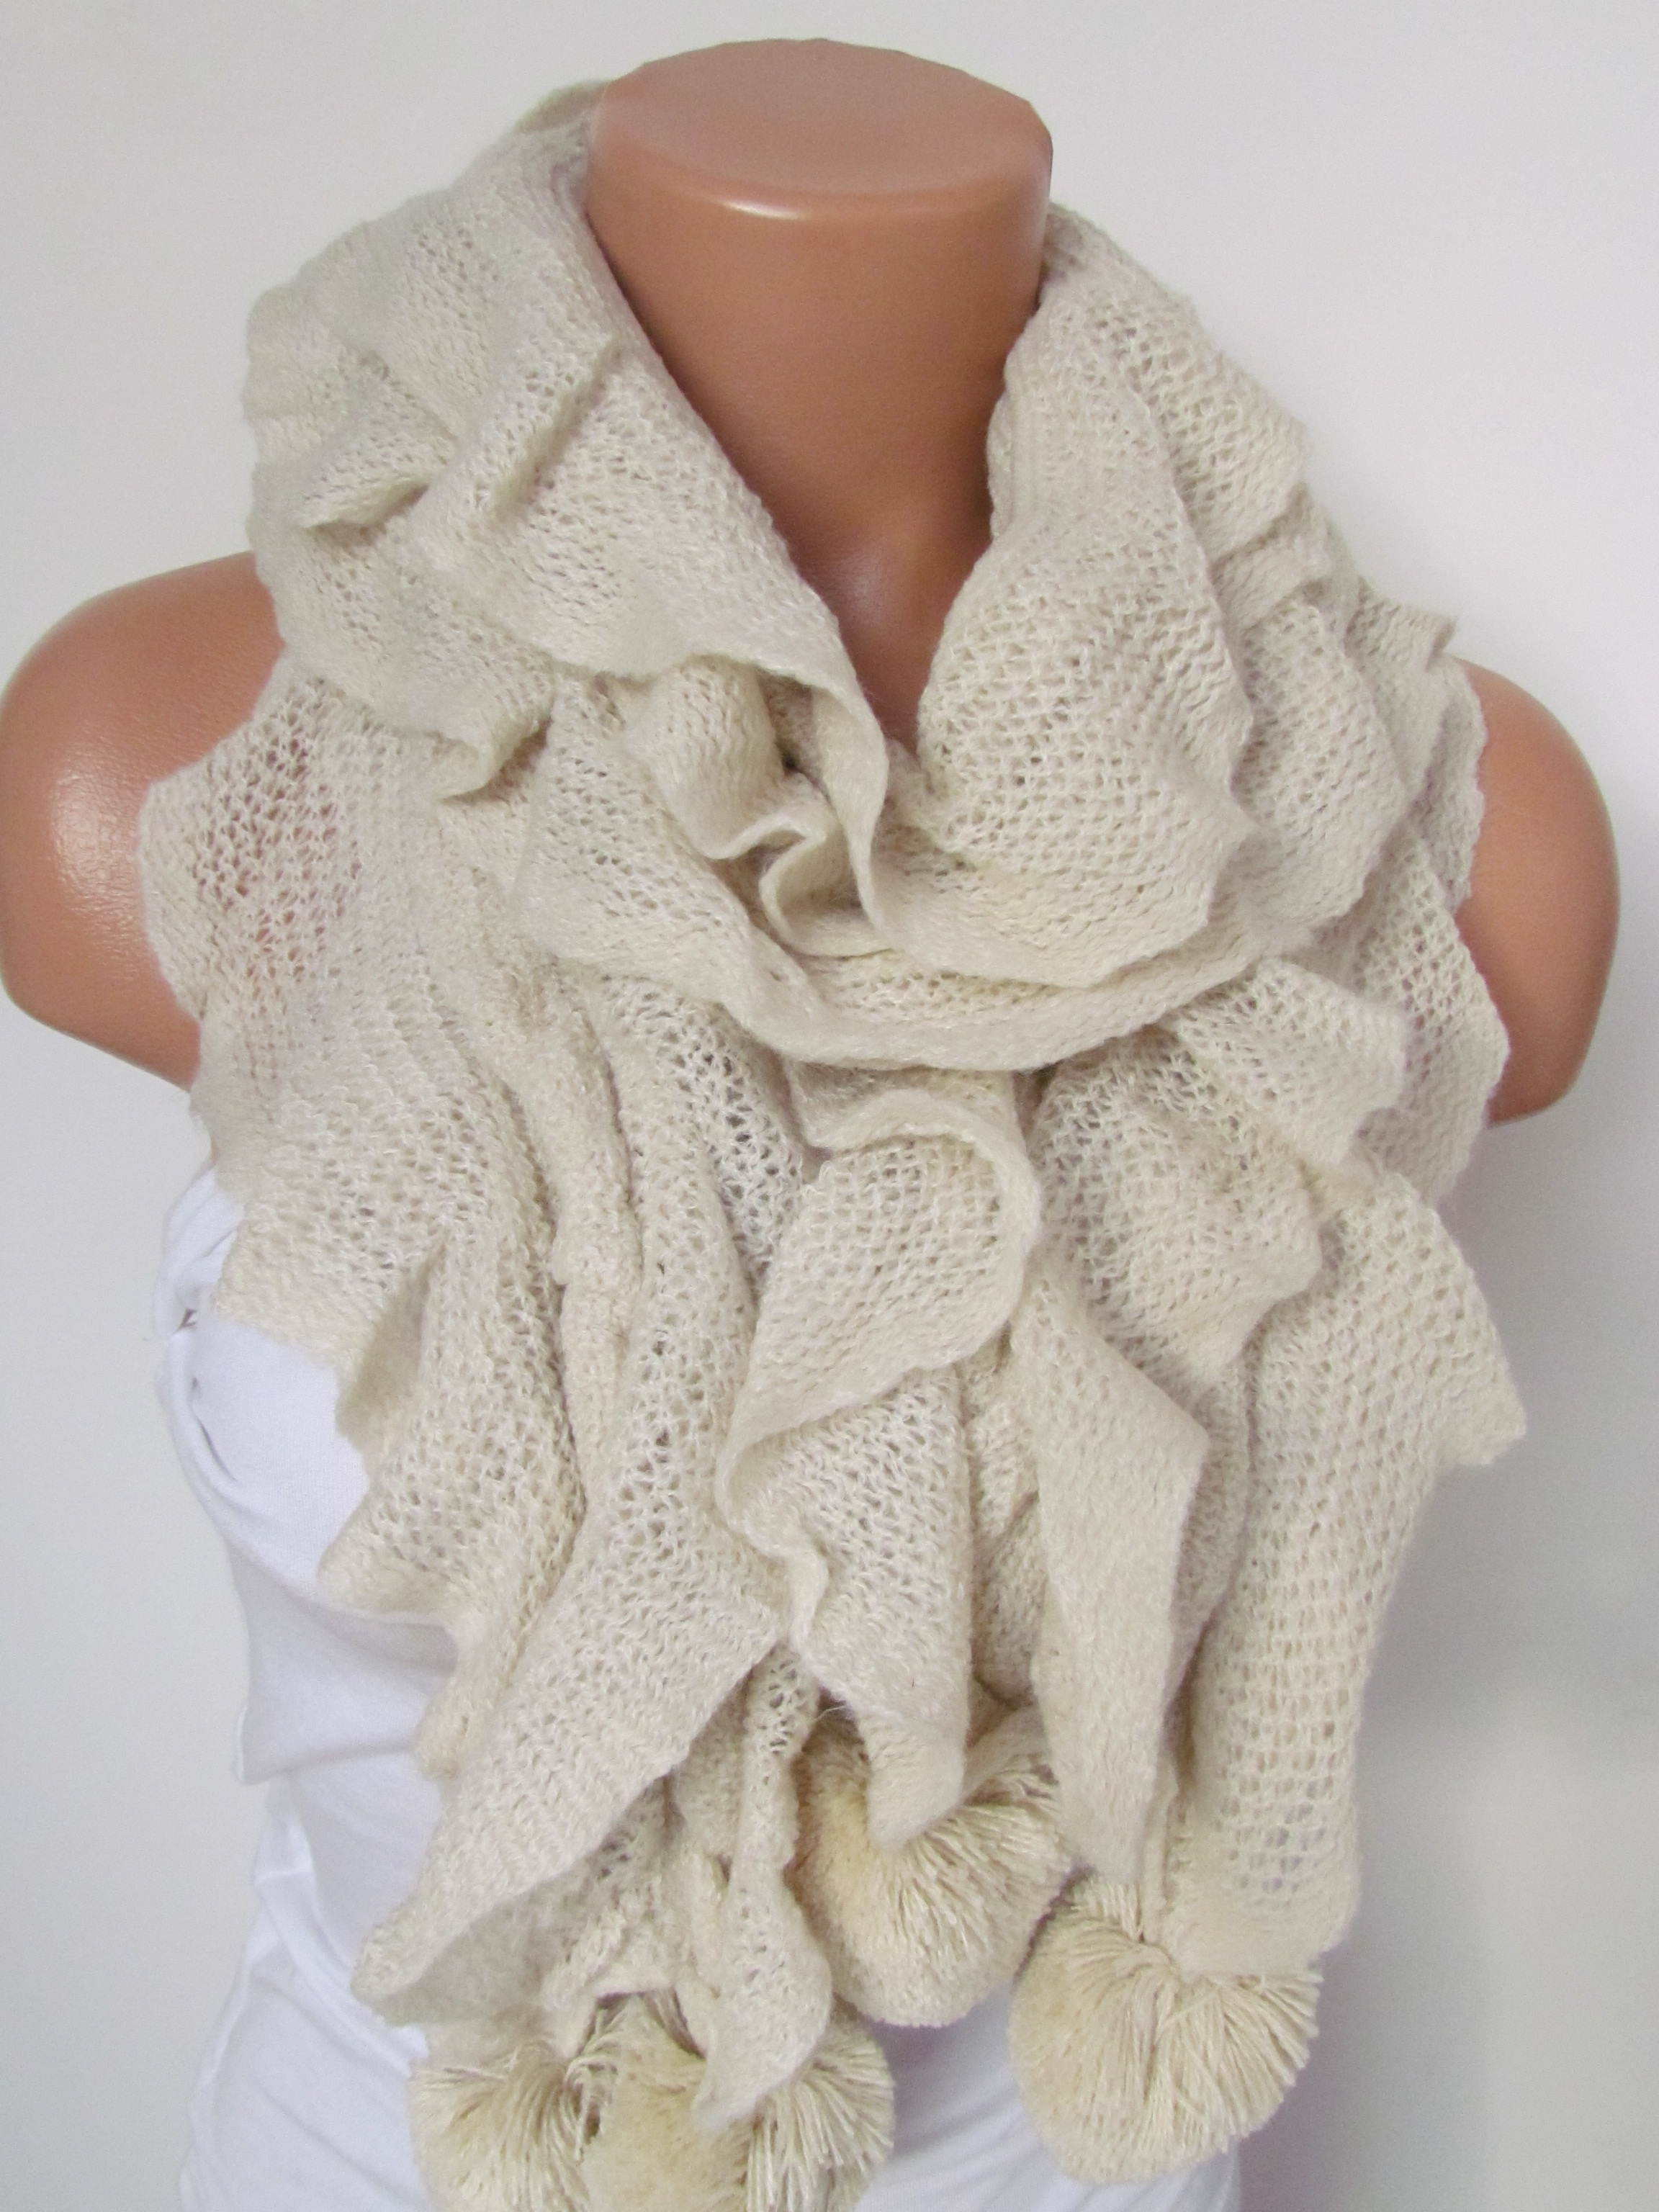 443b6e9bfab Stone Knitted Fabric Scarf - Shawl Scarf - Winter Fashion Scarf - Ruffle  Scarf - Infinty Scarf - Neck Warmer